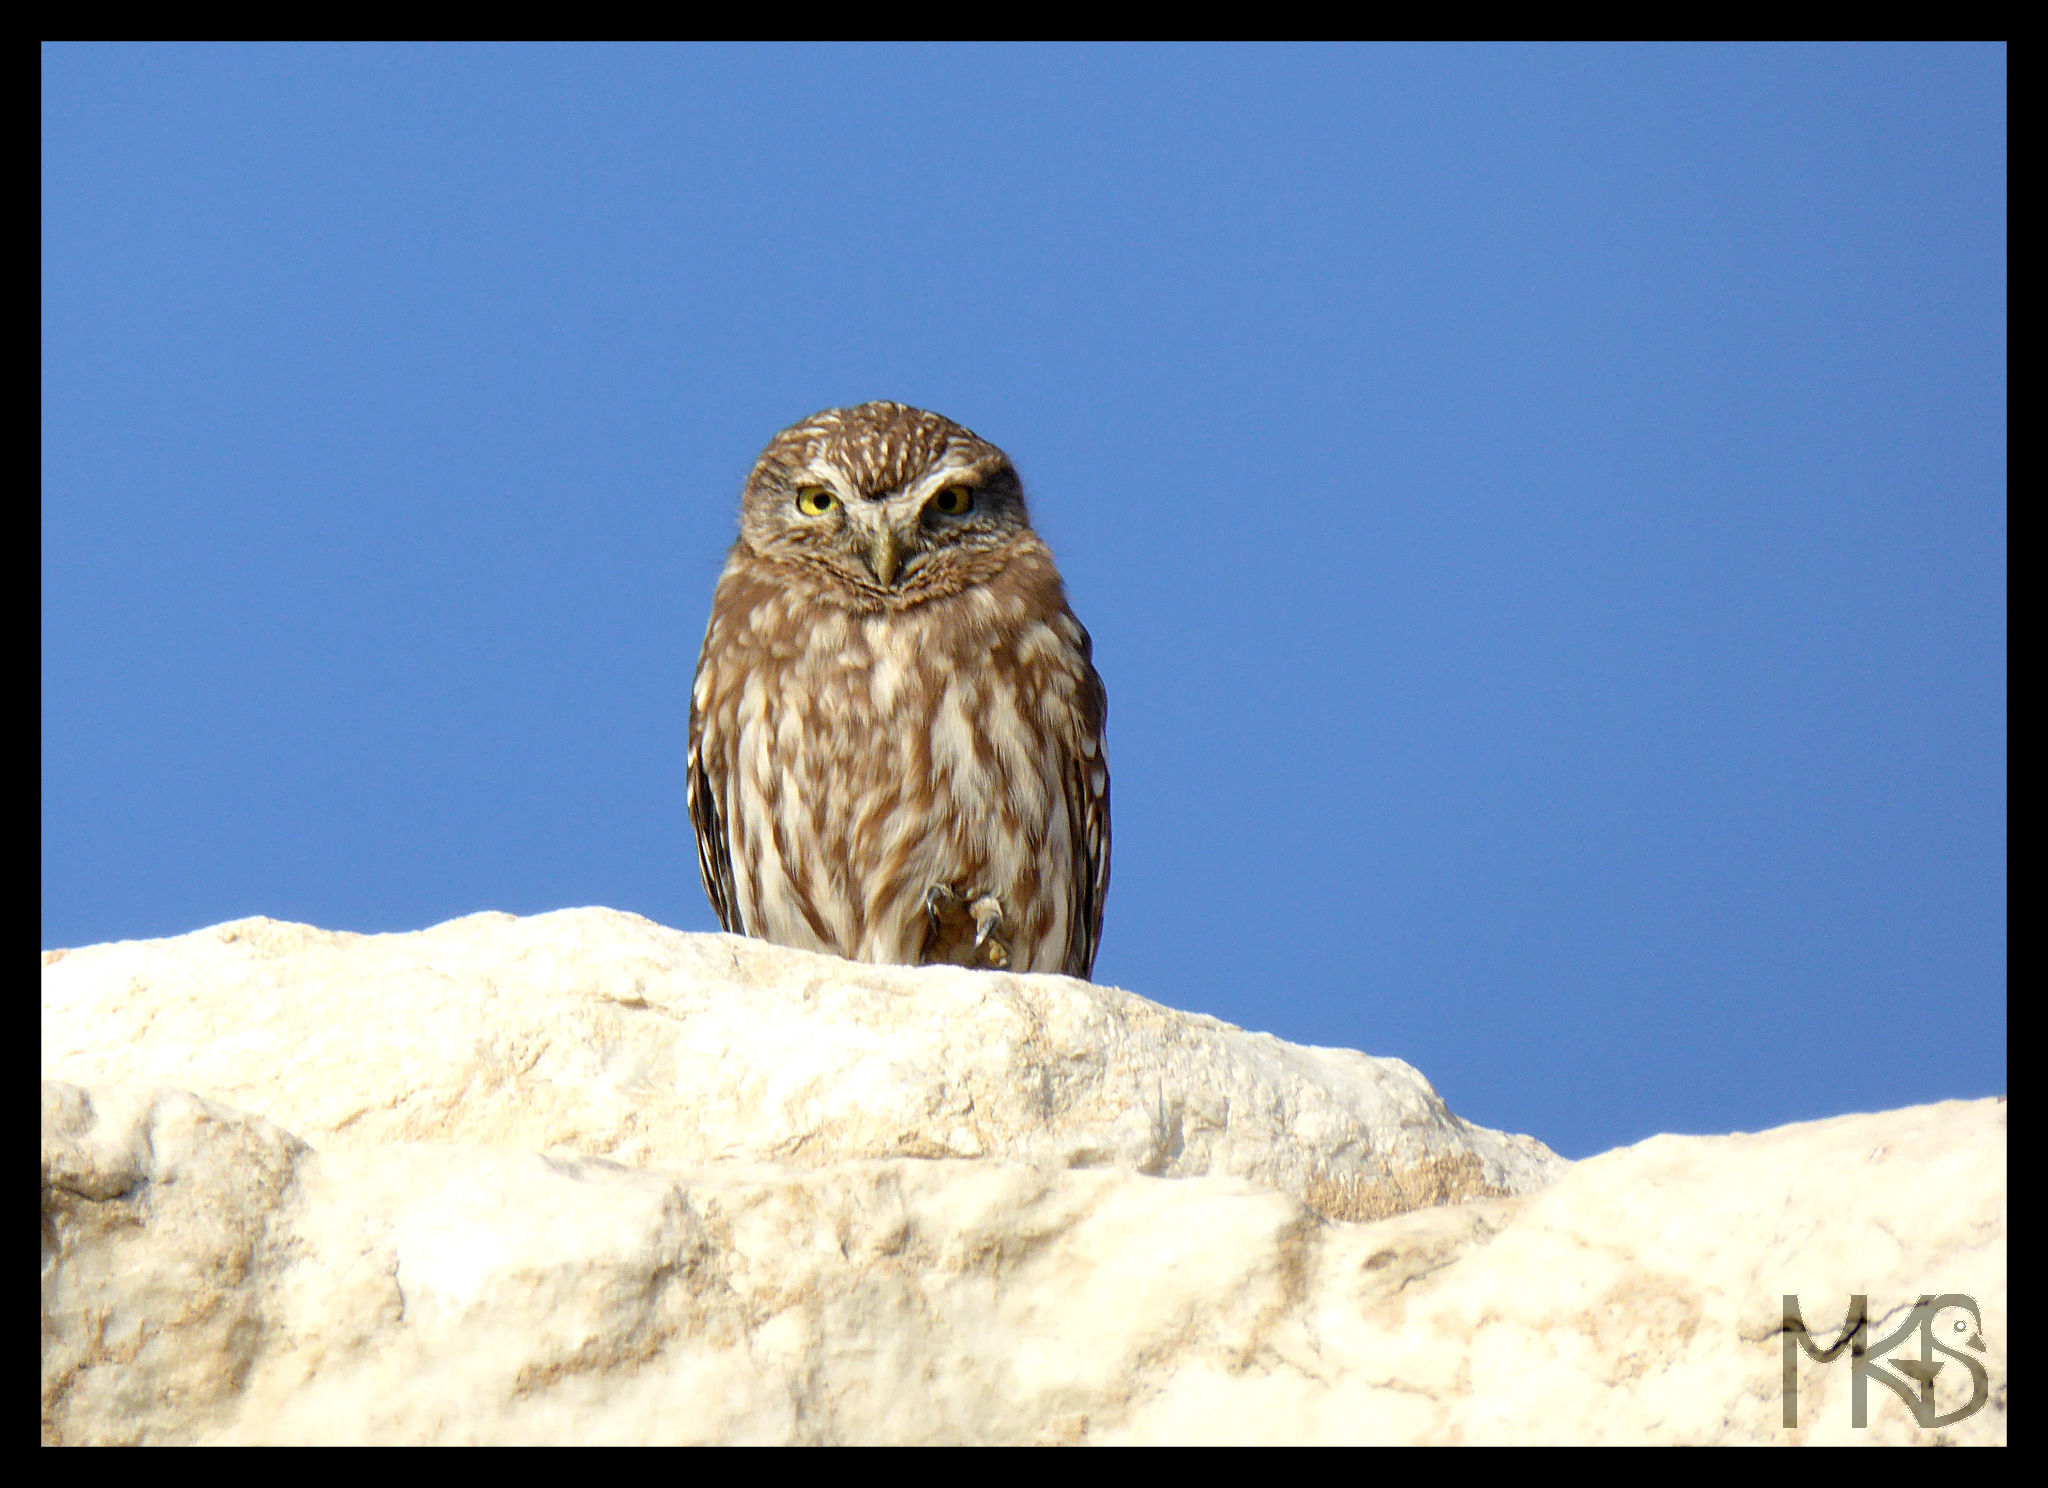 Owl in Laodikya, Turkey